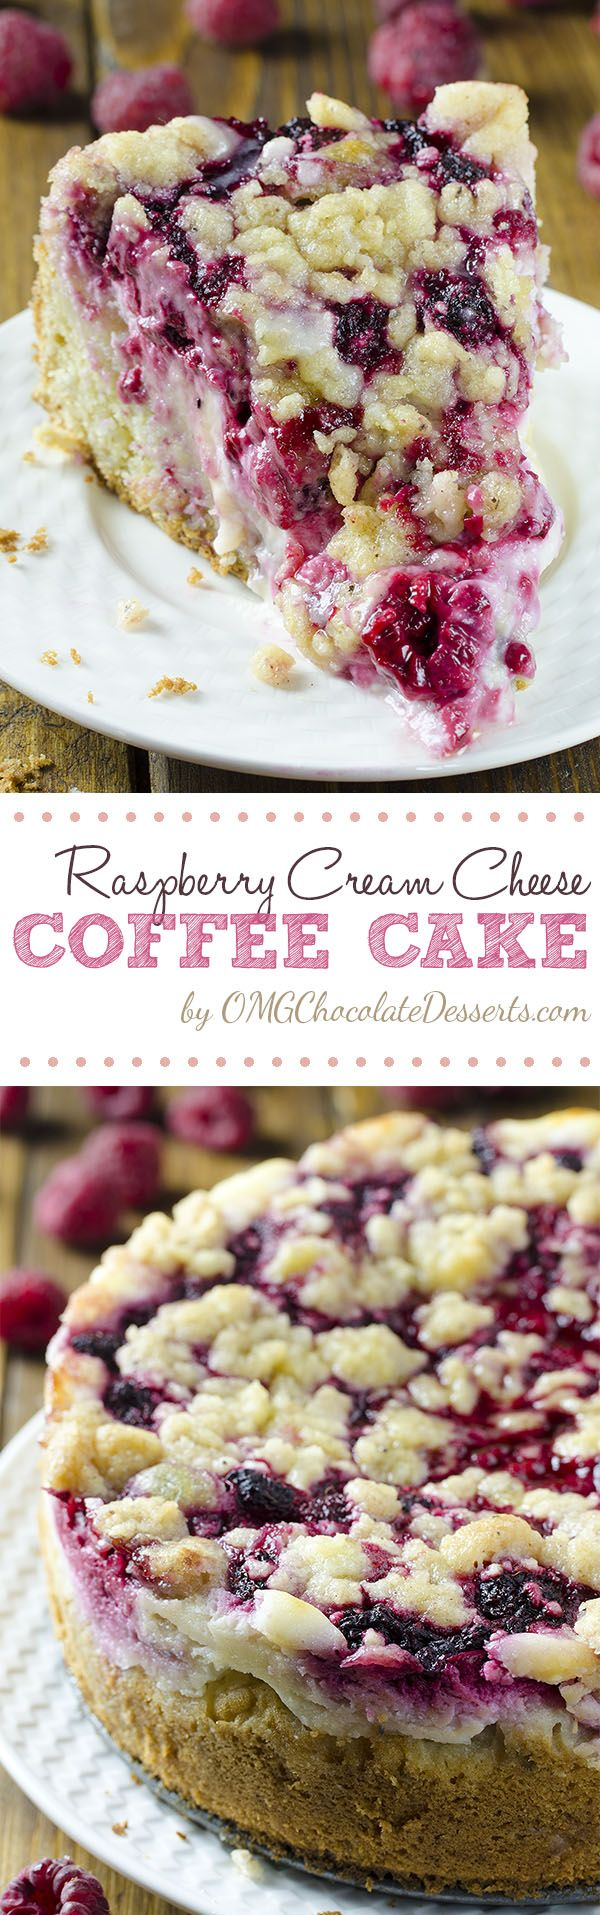 Raspberry Cream Cheese Coffee Cake – all flavors you love, you'll get here in every bite: moist and bu